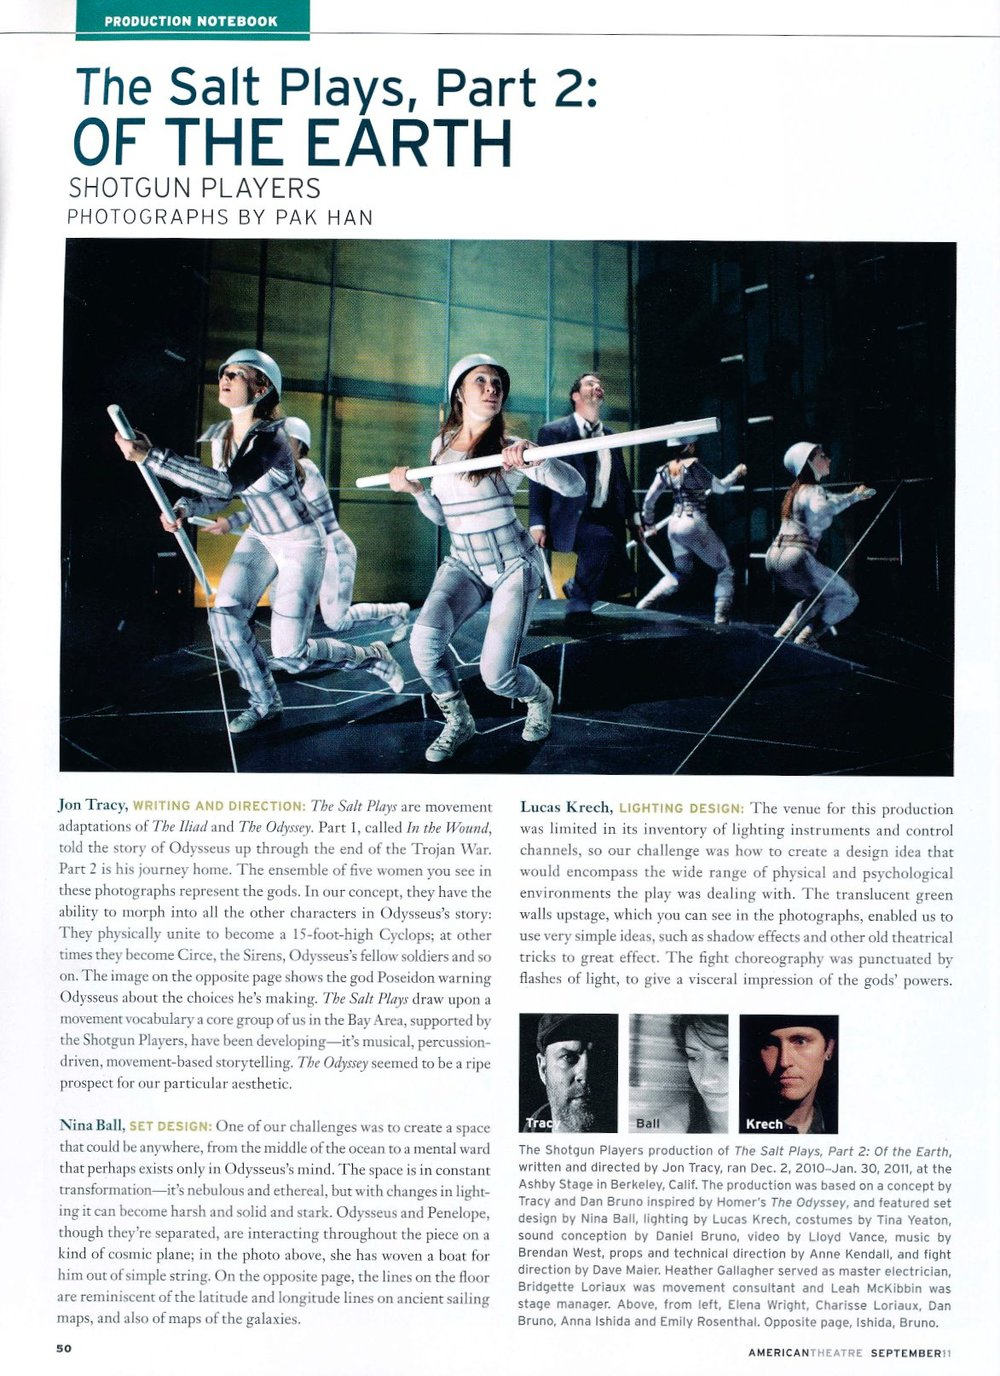 From American Theatre Magazine, September 2011 -